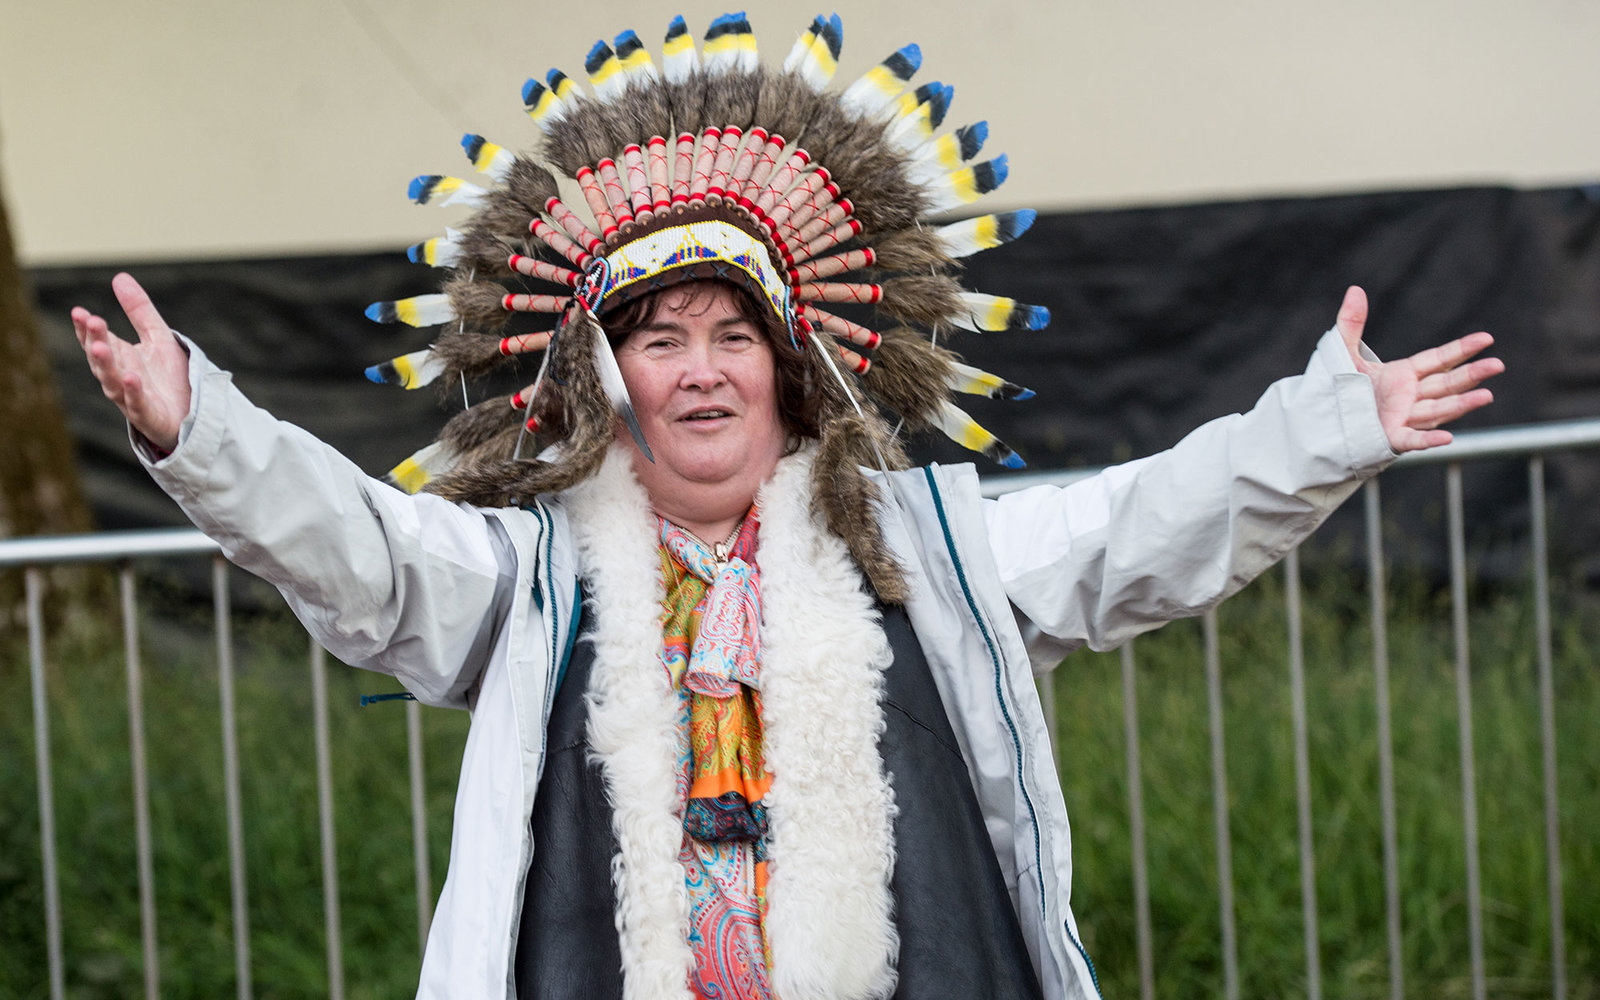 PERTH, SCOTLAND - JULY 12: Britain's Got Talent star Susan Boyle seen posing backstage during 'T in the Park' festival on July 12, 2015 in Perth, Scotland.PHOTOGRAPH BY Ollie Millington / Barcroft Media (Photo credit should read Ollie Millington / Barcr